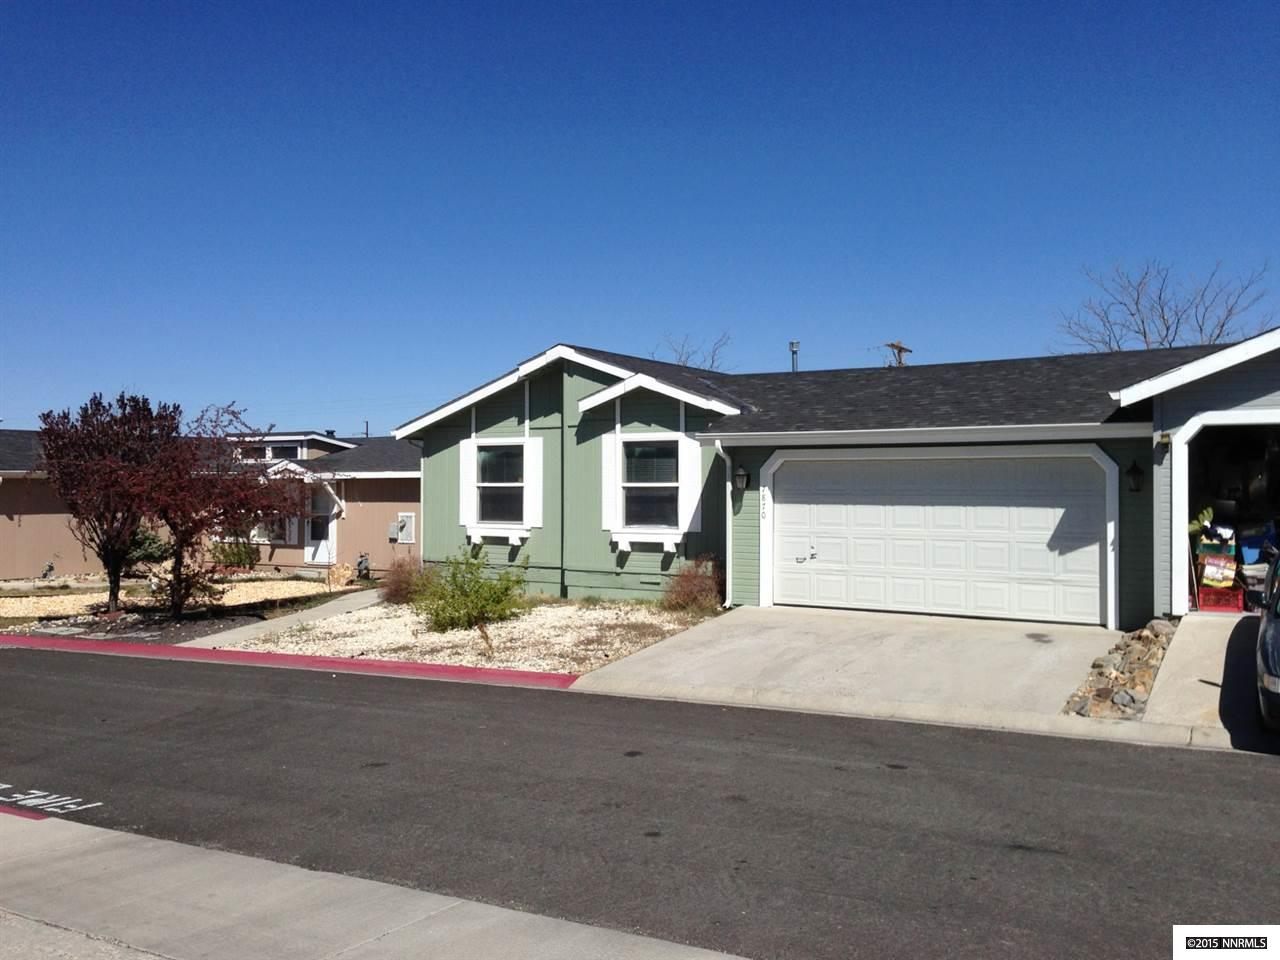 7870 N Claridge Pointe Pkwy, Reno, NV